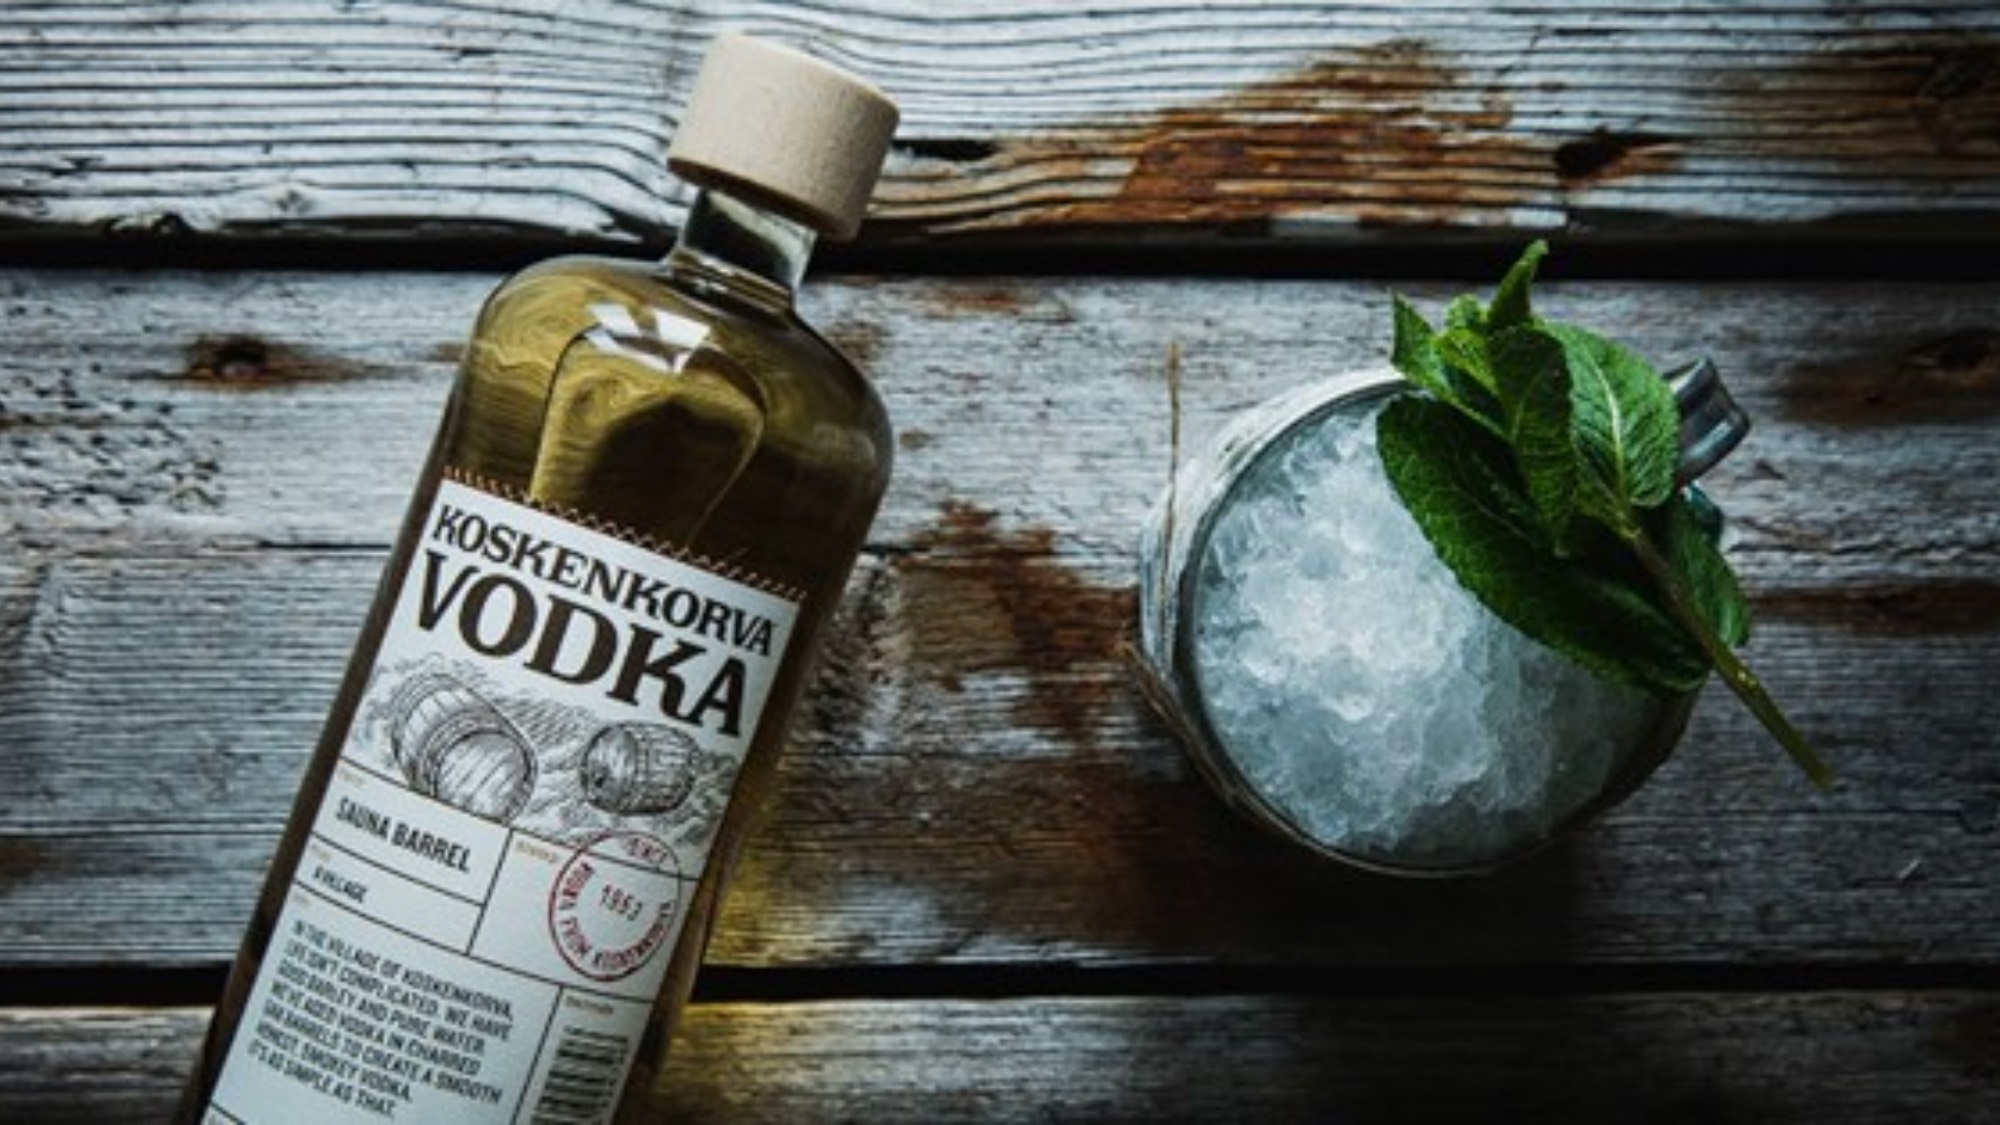 A bottle of Koskenkorva vodka next to a glass with a drink